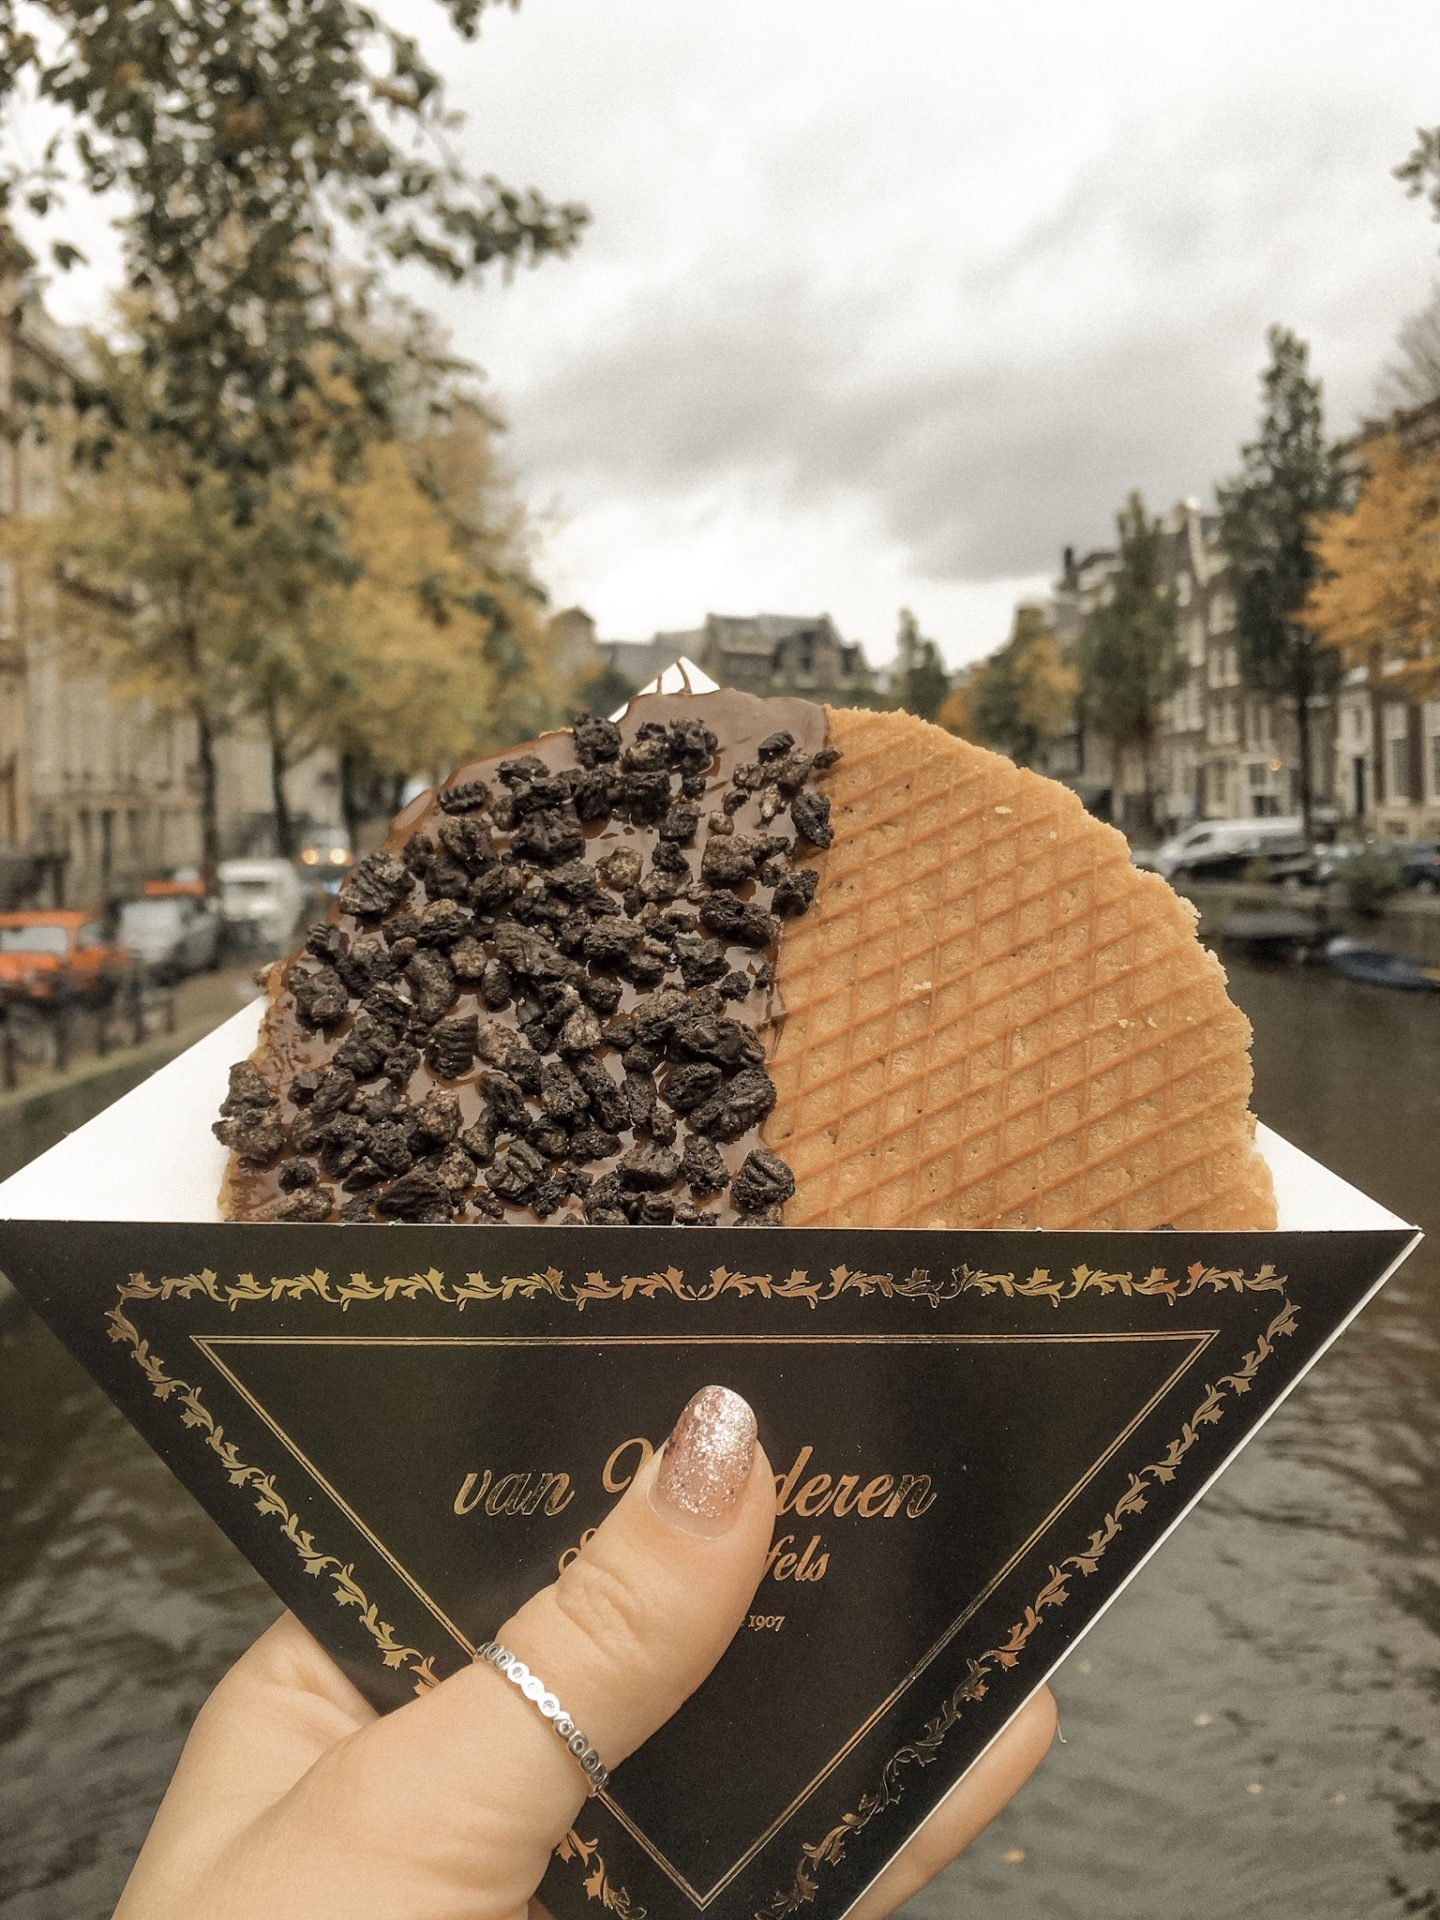 Stroopwafel in Amsterdam by a canal